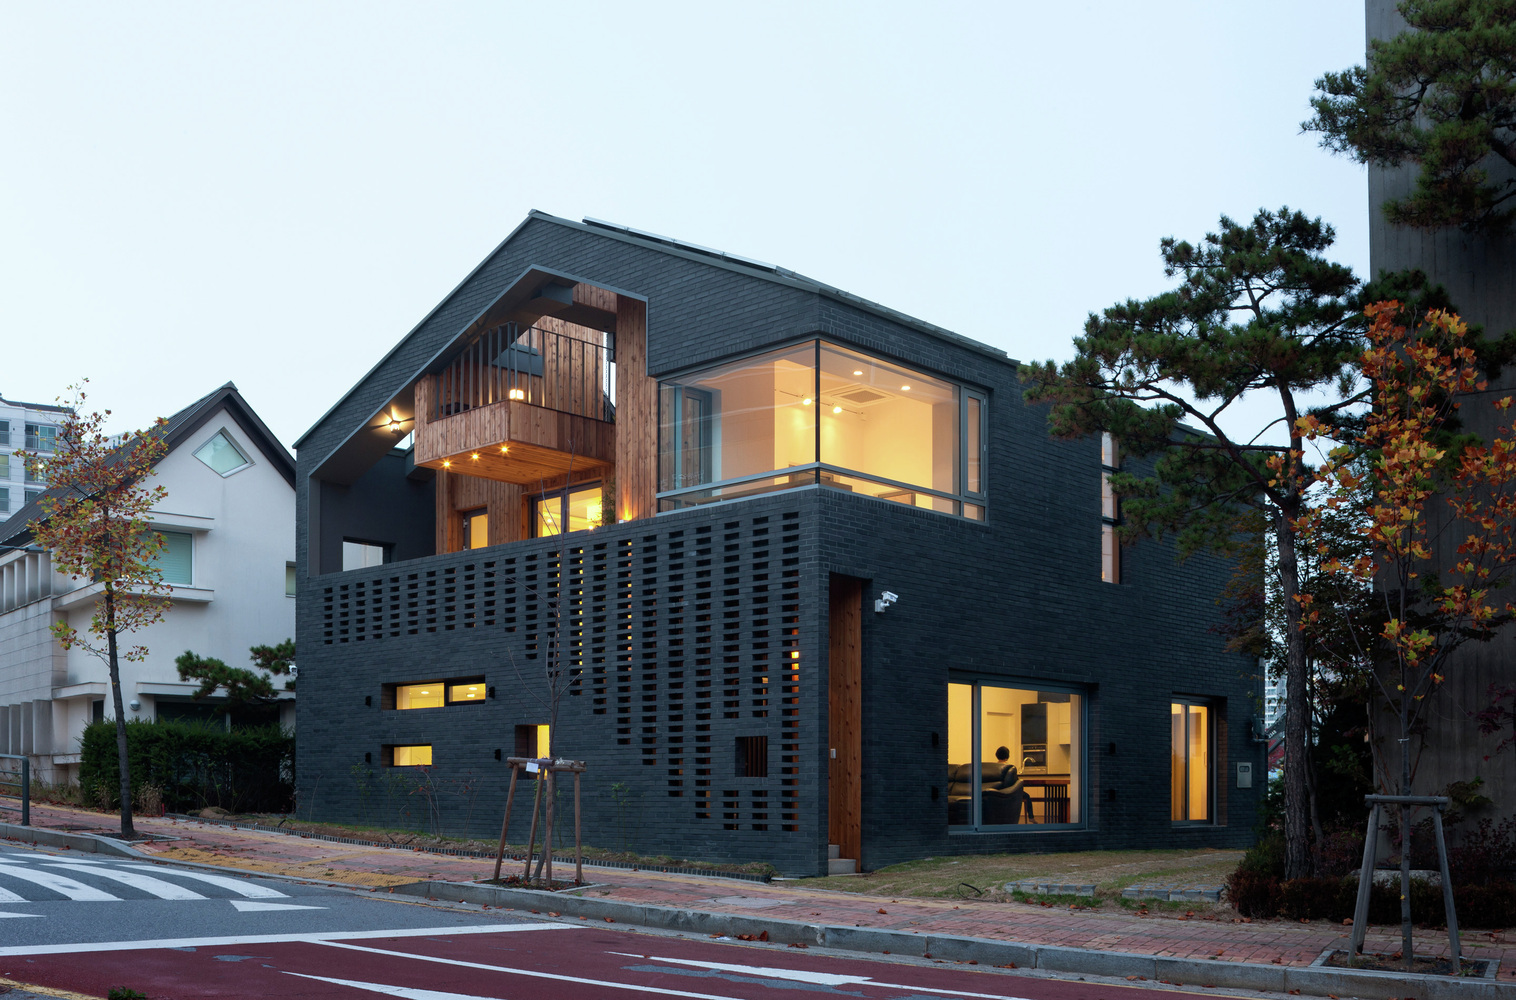 Kangaroo House / Hyunjoon Yoo Architects